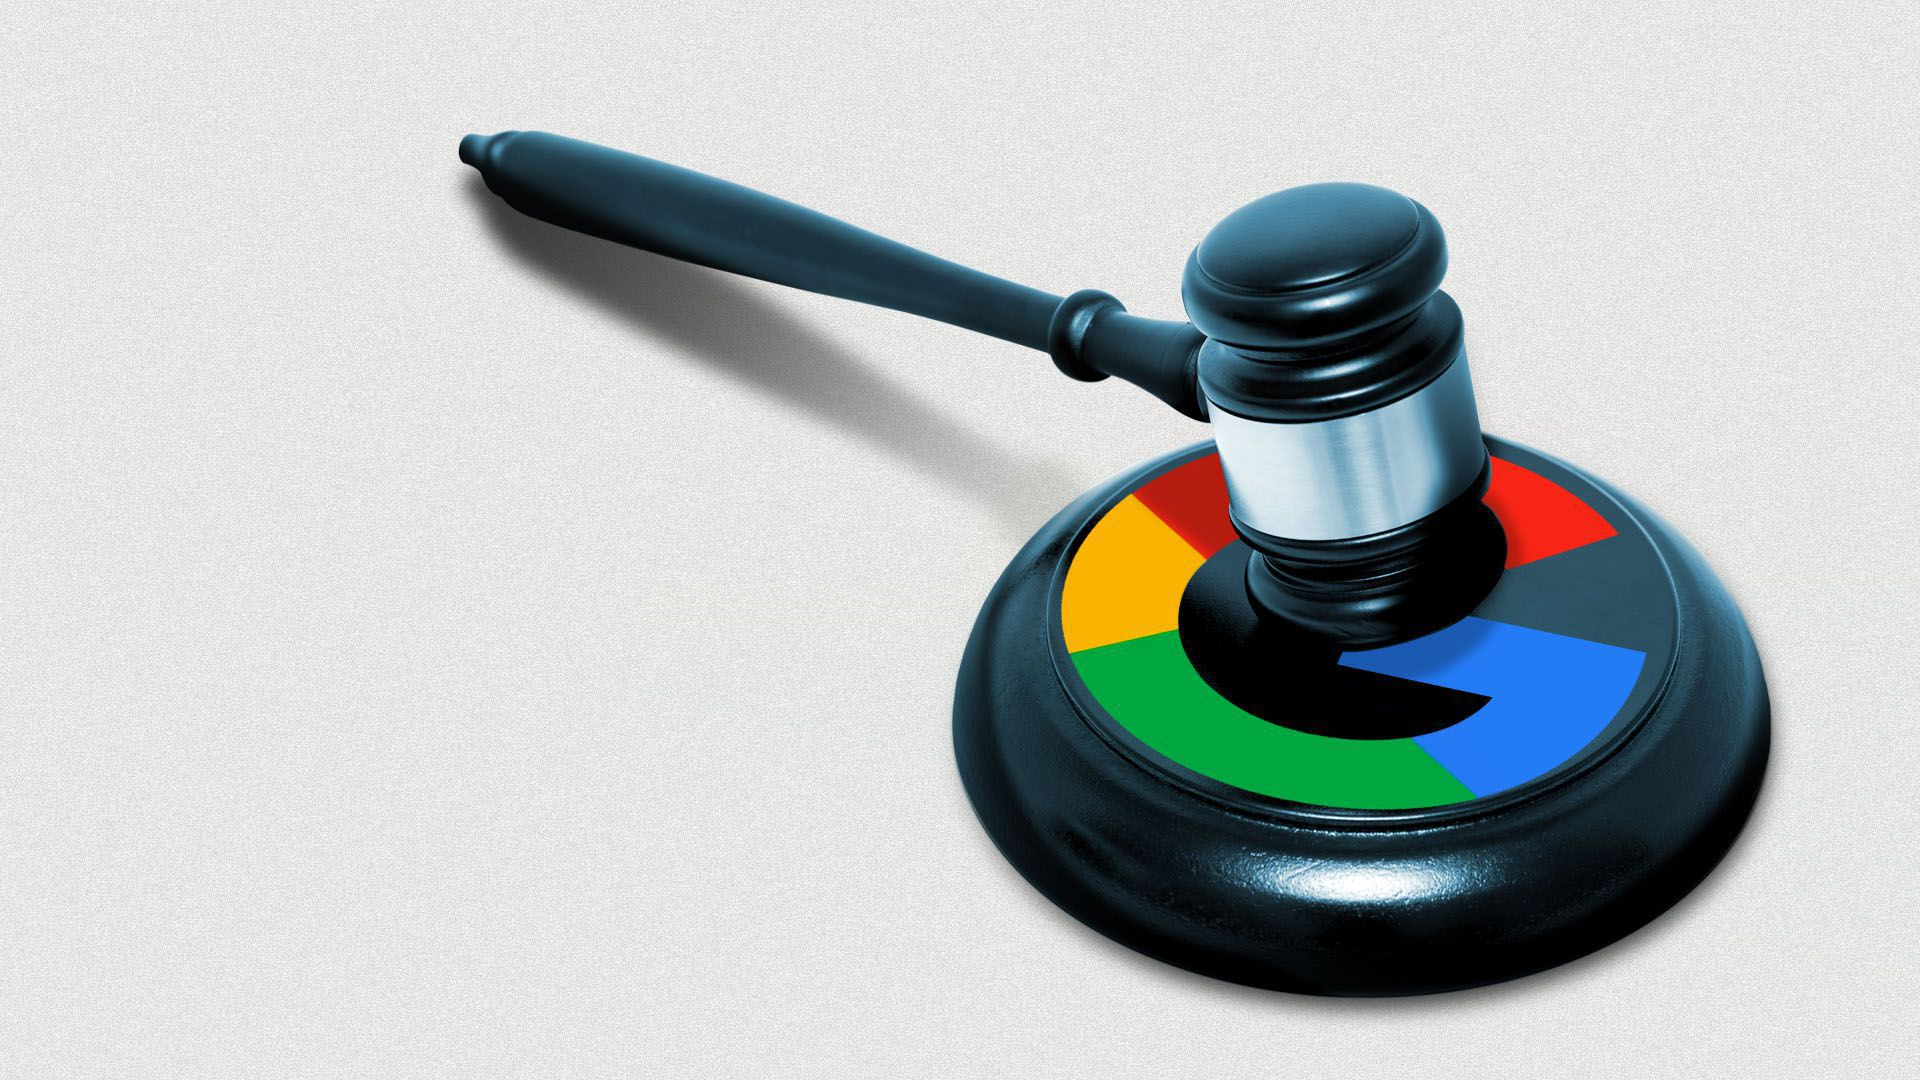 An illustration of a gavel with the Google logo on the base.